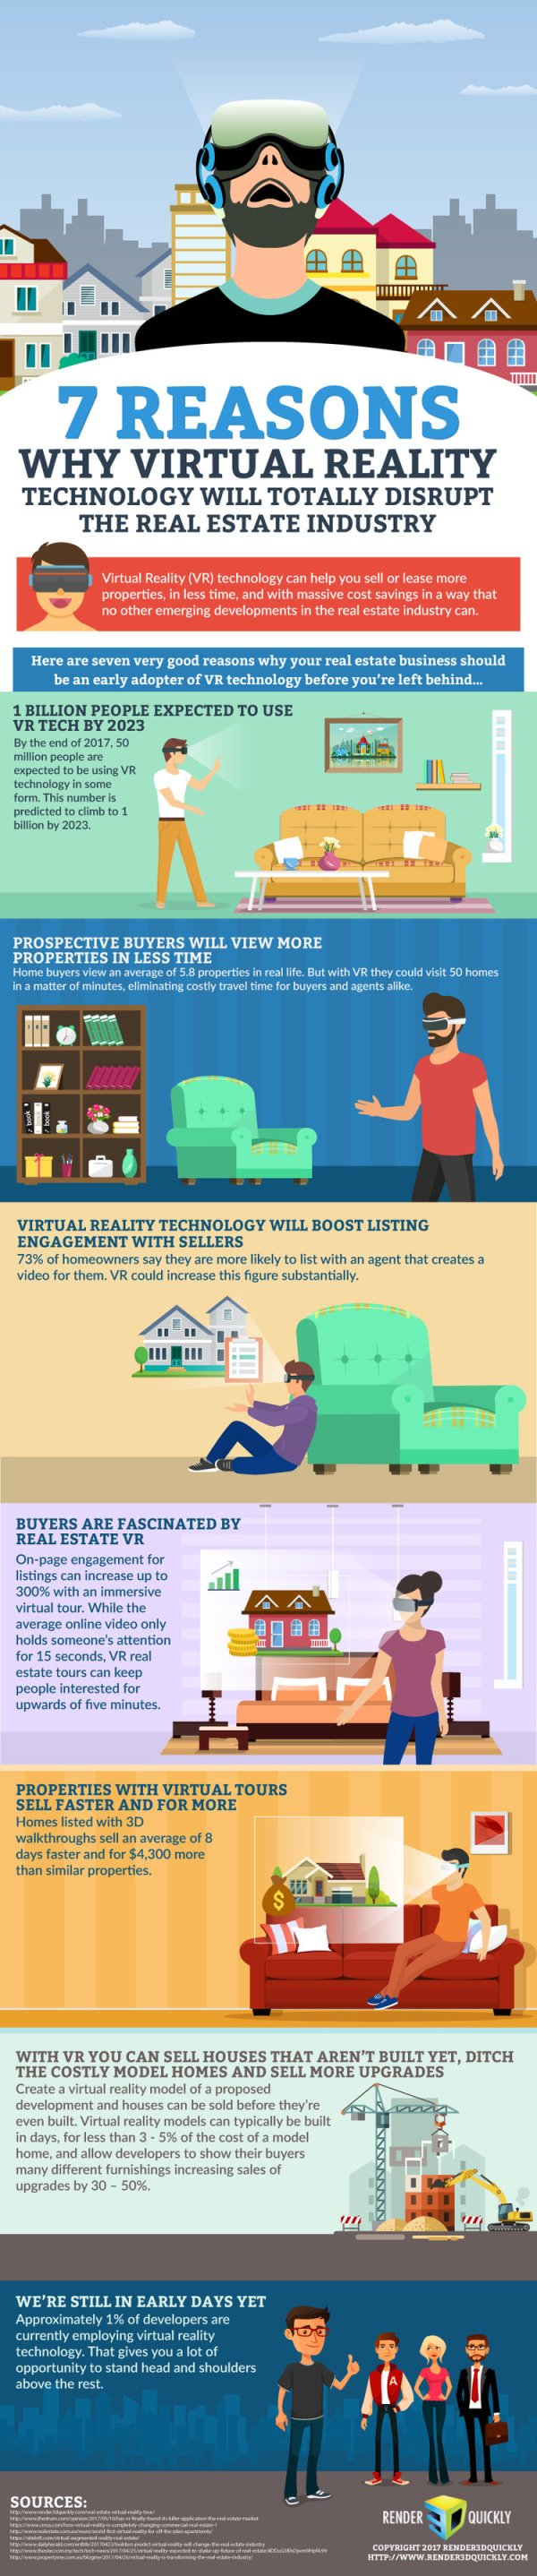 7+Reasons+Why+Virtual+Reality+Technology+Will+Totally+Disrupt+the+Real+Estate+Industry-infographic-galleryr